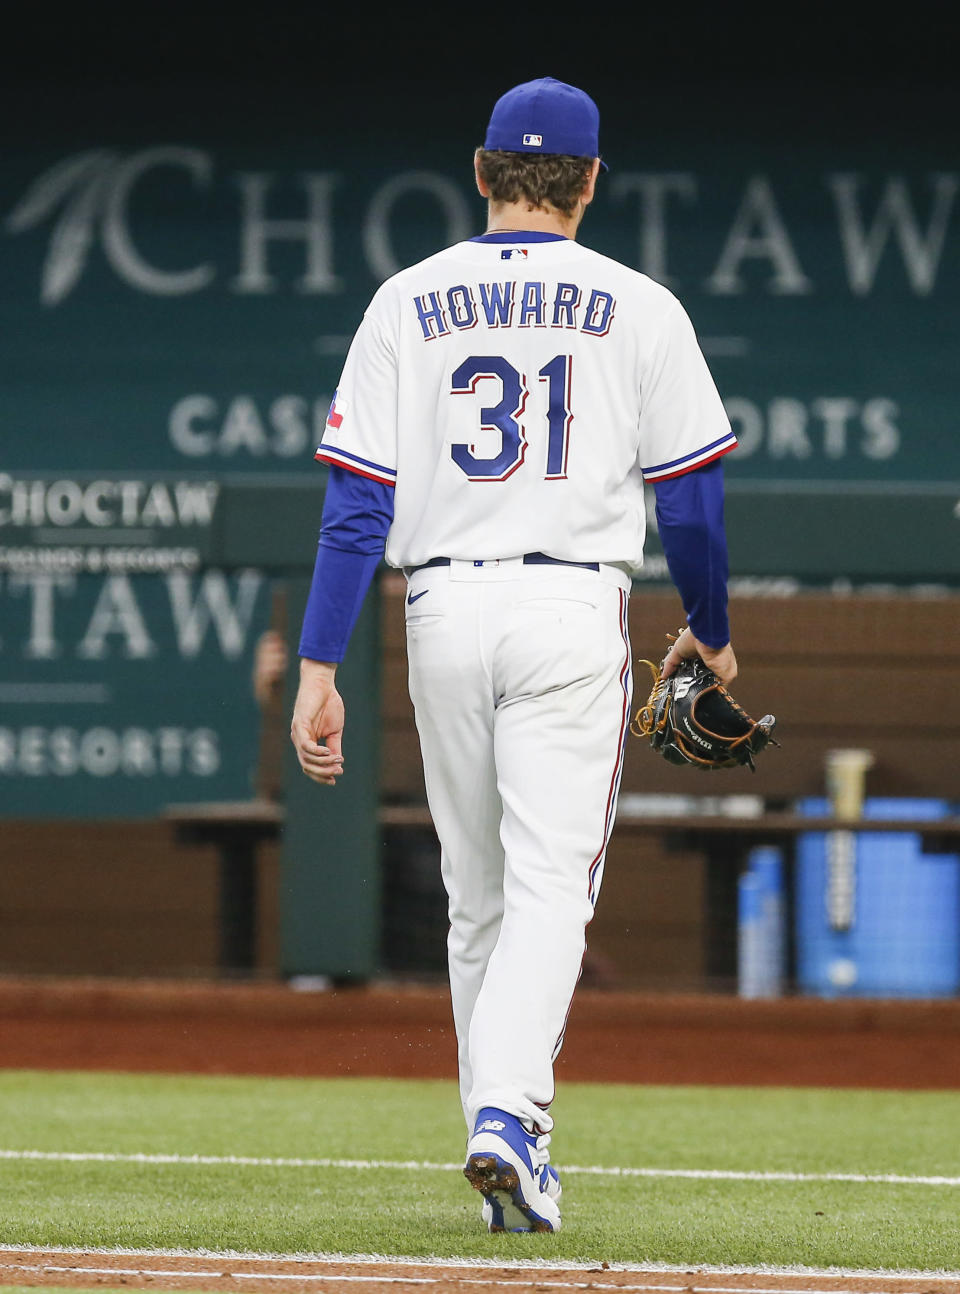 Texas Rangers starting pitcher Spencer Howard (31) is relieved in the third inning of a baseball game against the Los Angeles Angels, Thursday, Aug. 5, 2021, in Arlington, Texas. (AP Photo/Brandon Wade)